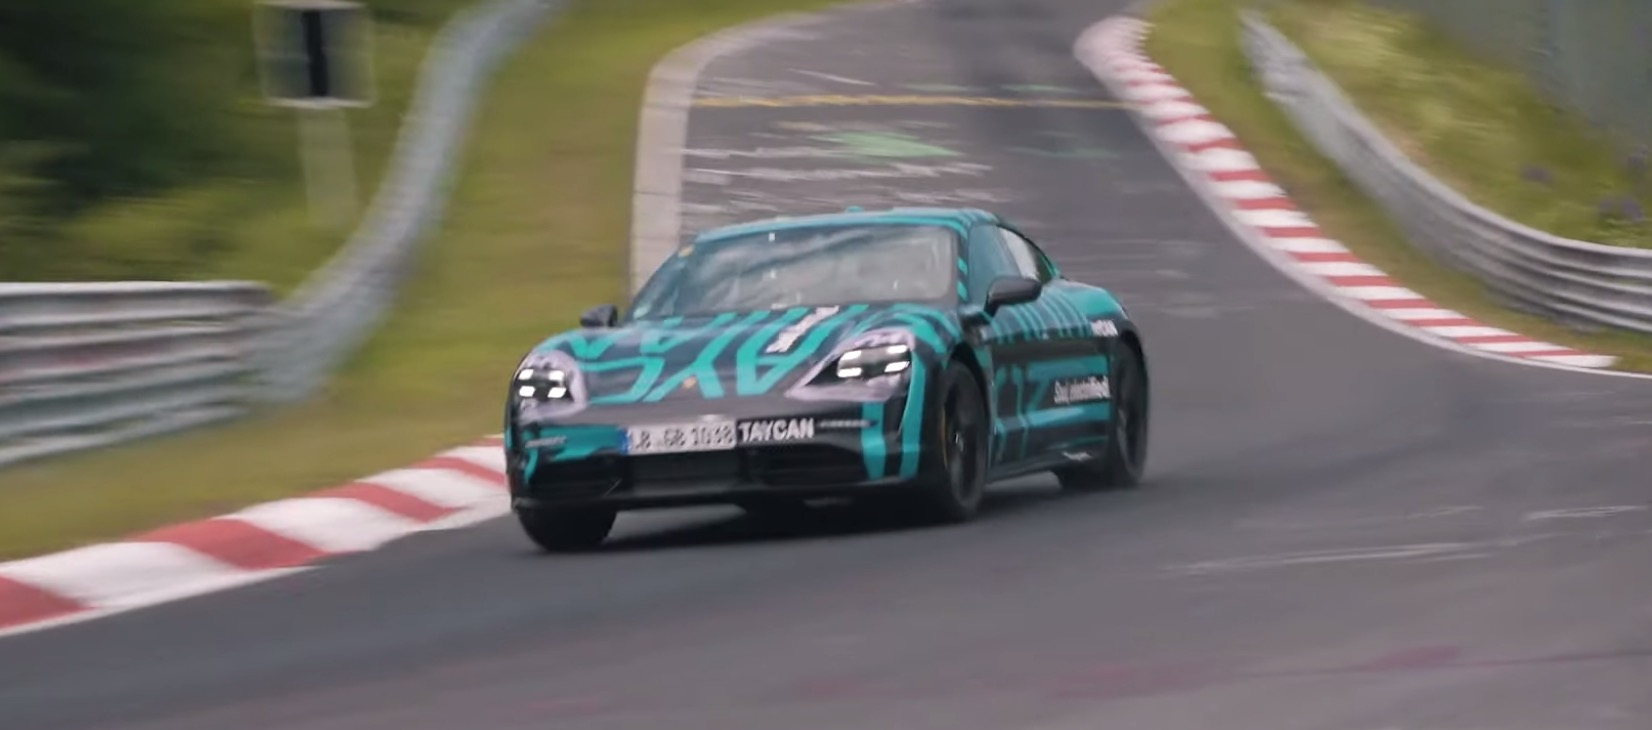 Porsche Taycan claims new Nürburgring racetrack record with